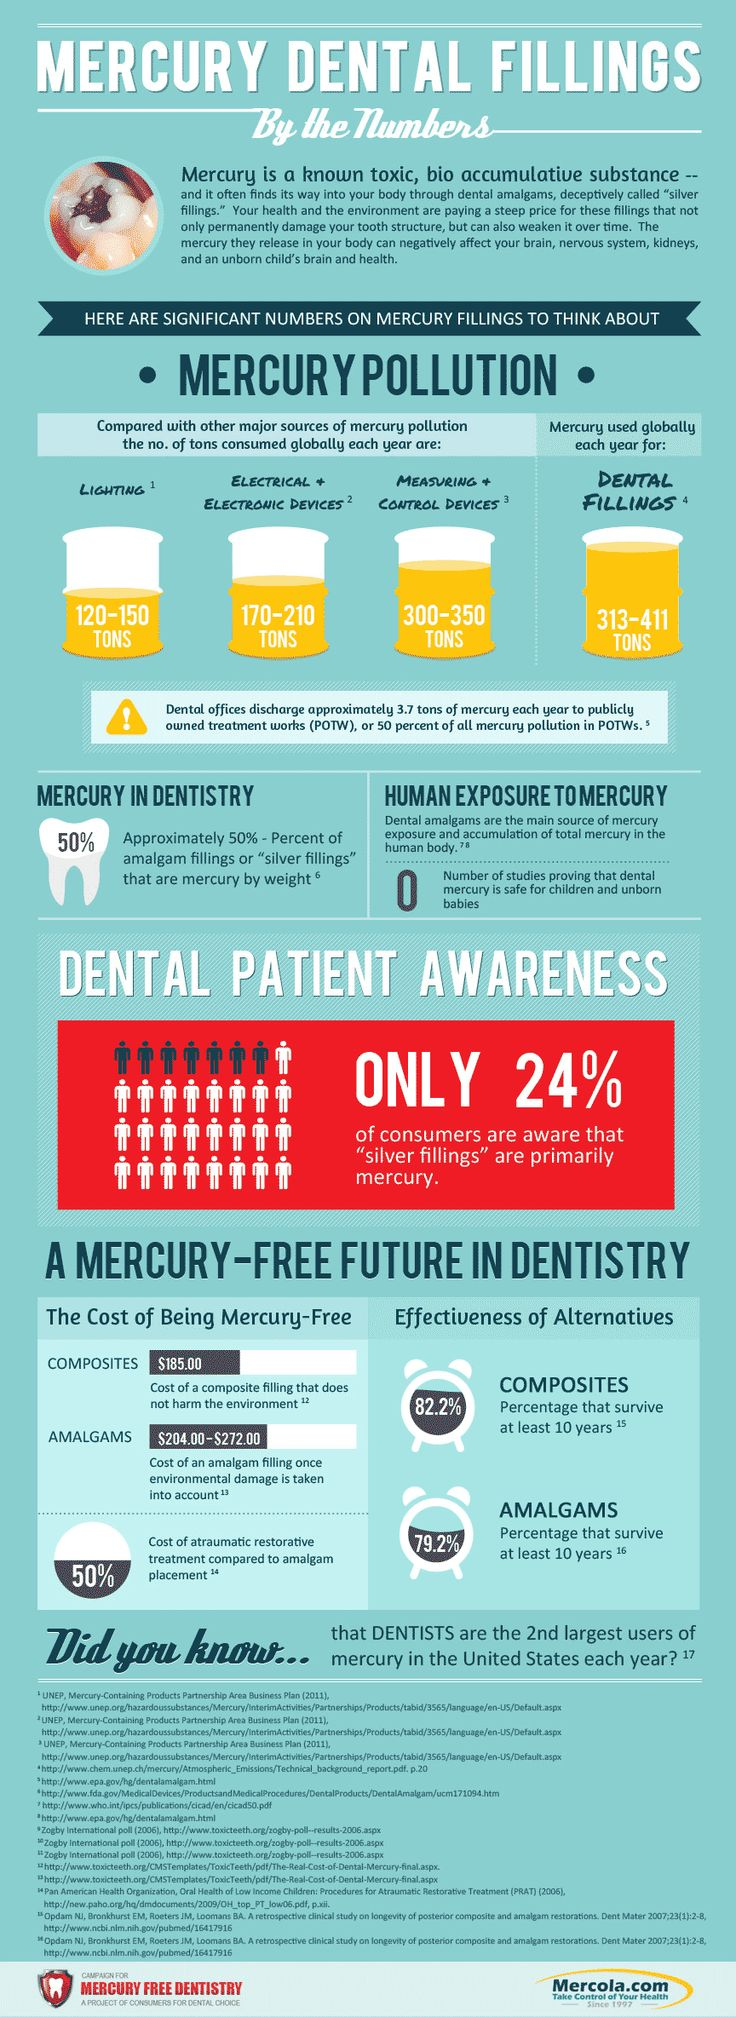 The Dangers of Mercury Fillings ~ http://healthpositiveinfo.com/mercury-fillings.html